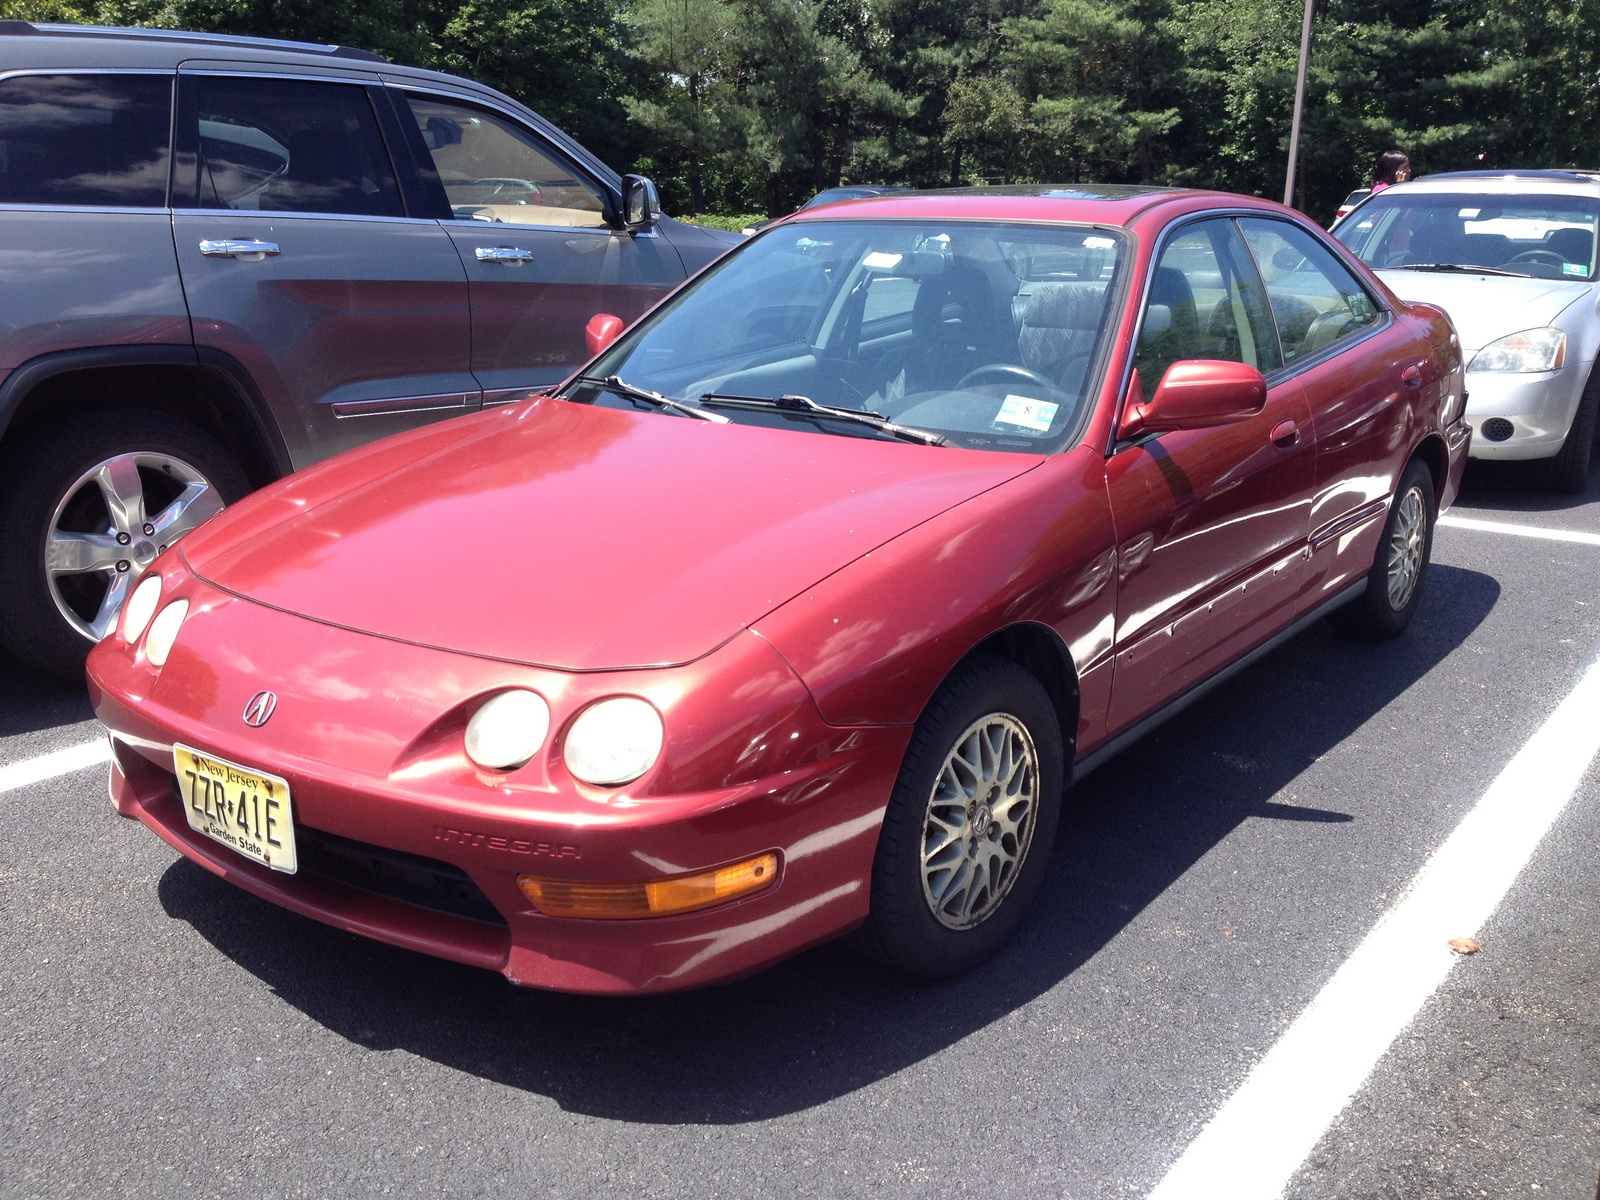 Acura Integra Dr Ls Sedan Pic on 1991 Acura Integra Hatchback